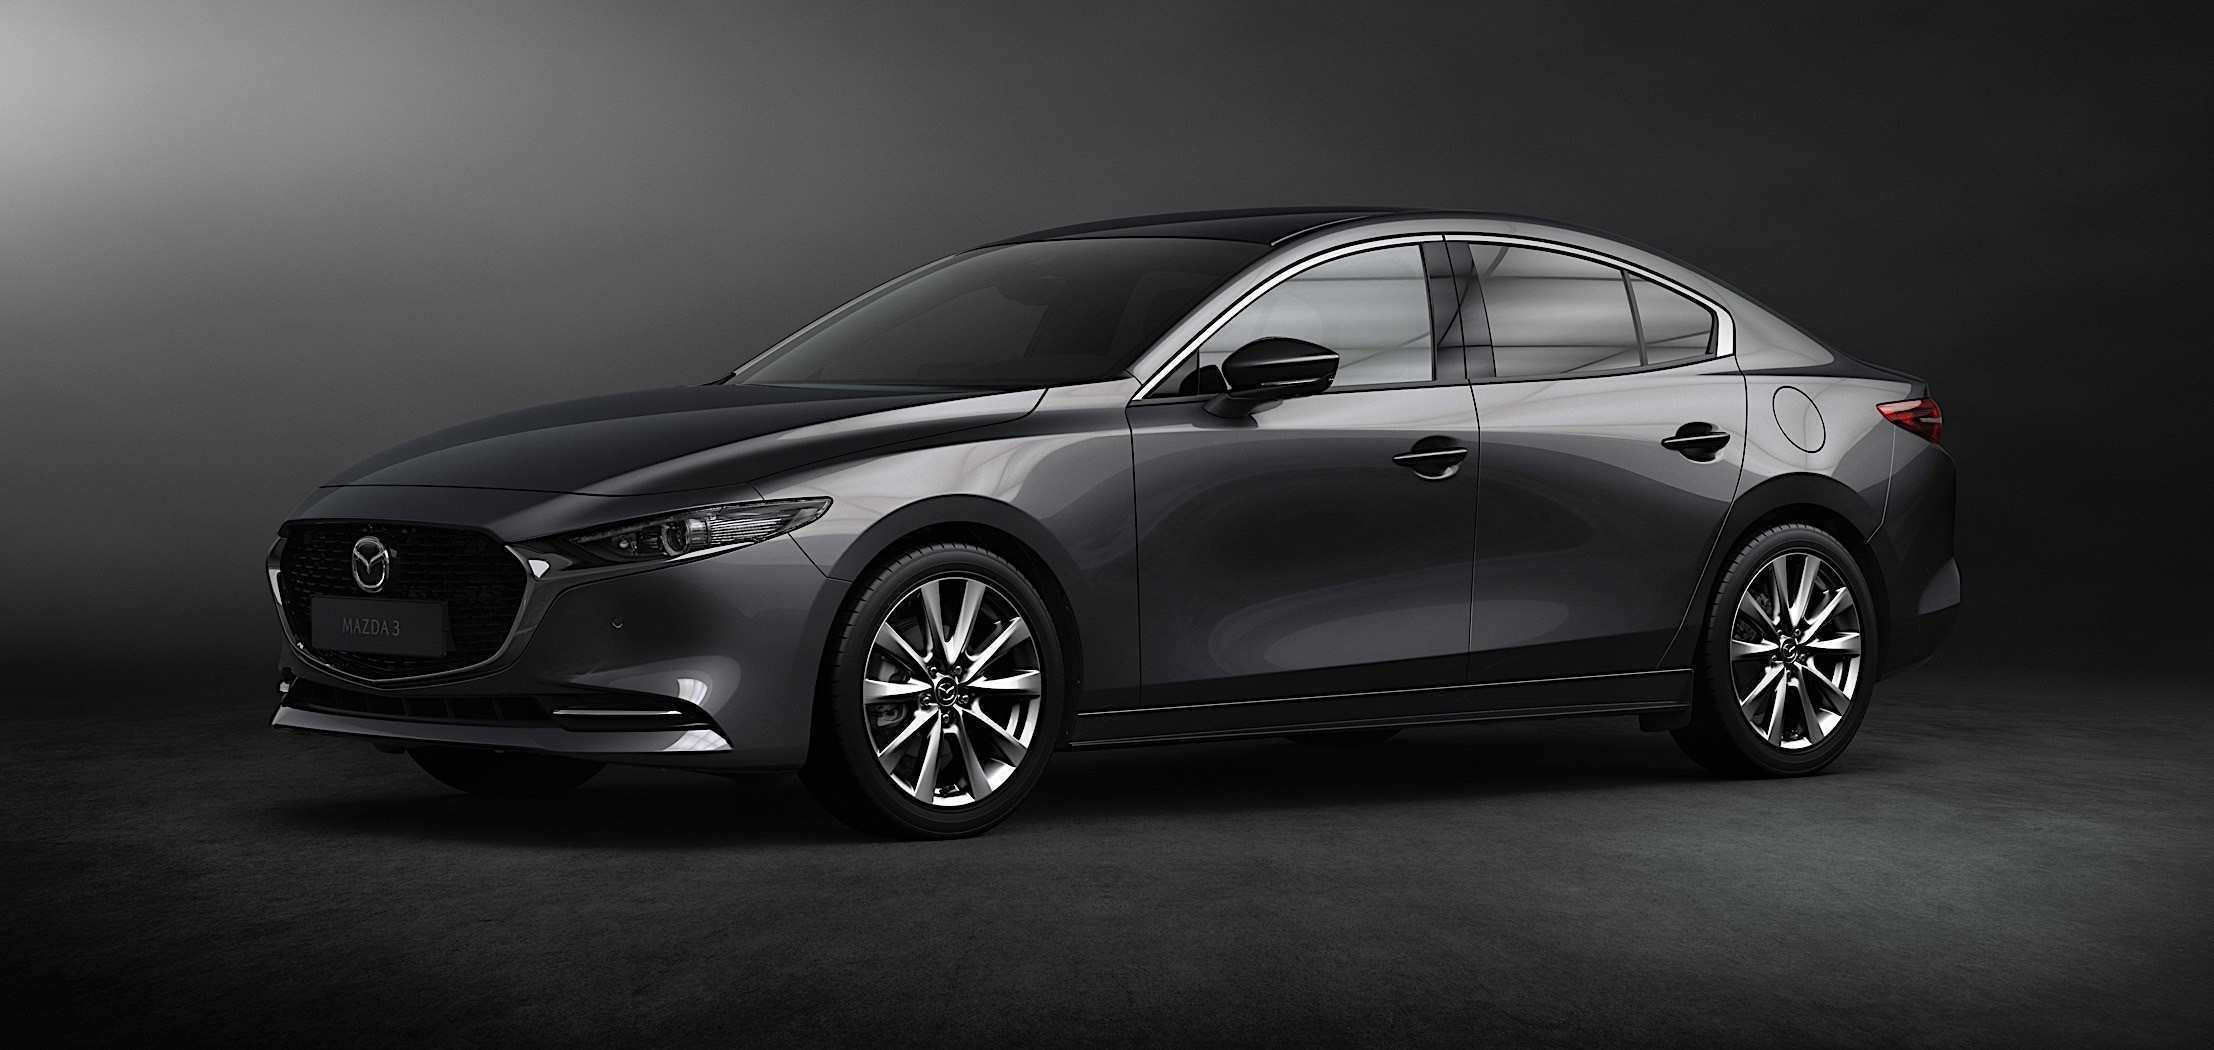 62 The Best 2020 Mazda 3 Sedan Redesign And Concept